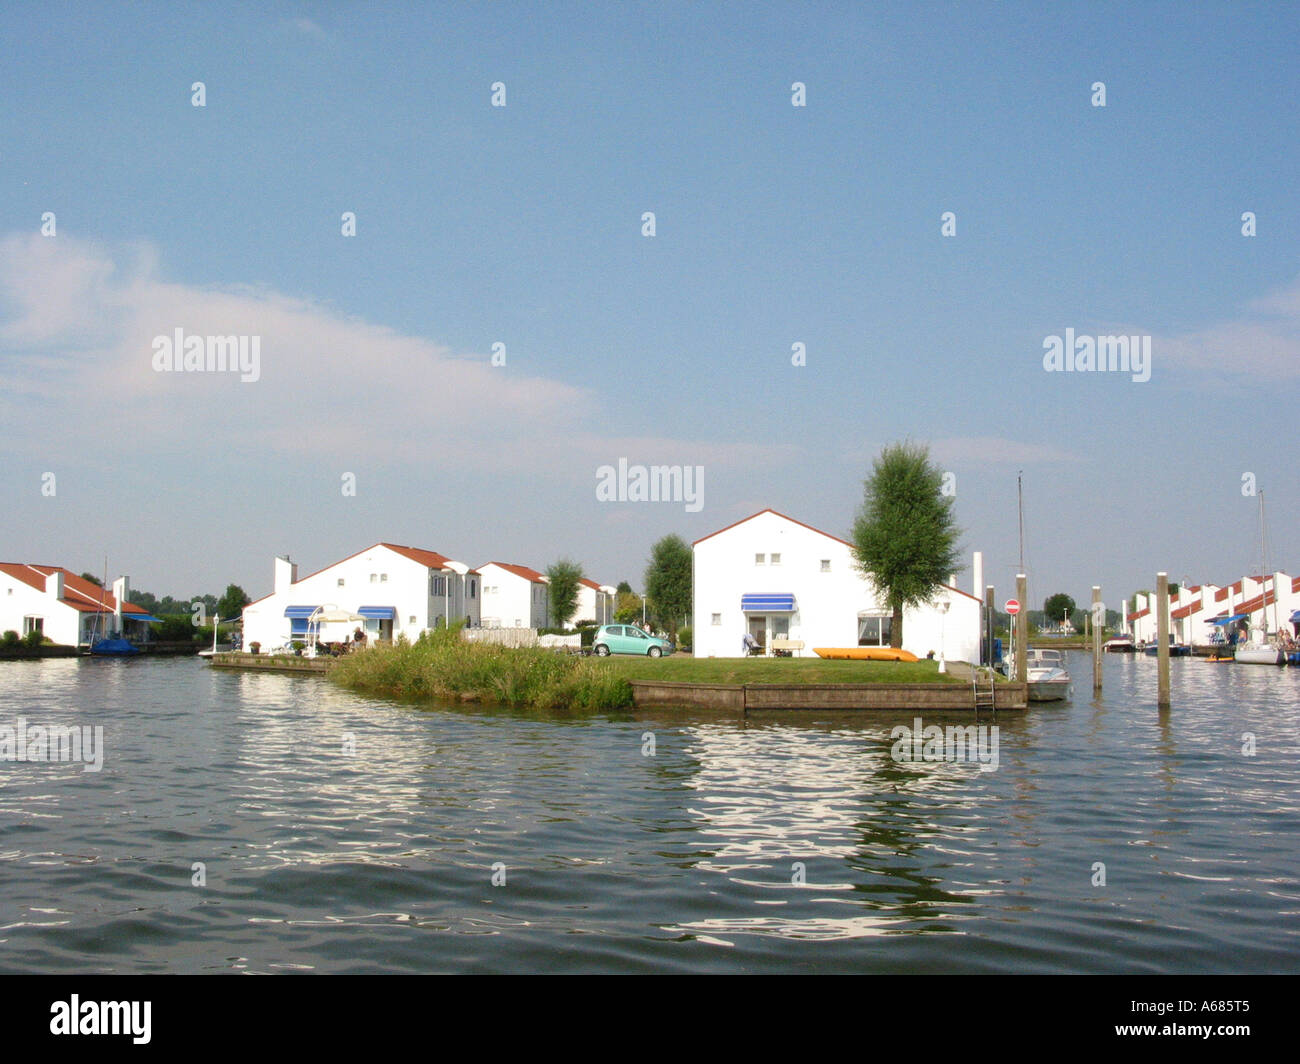 Swell Marina Oolderhuuske Resort With Floating Homes Built On Download Free Architecture Designs Scobabritishbridgeorg